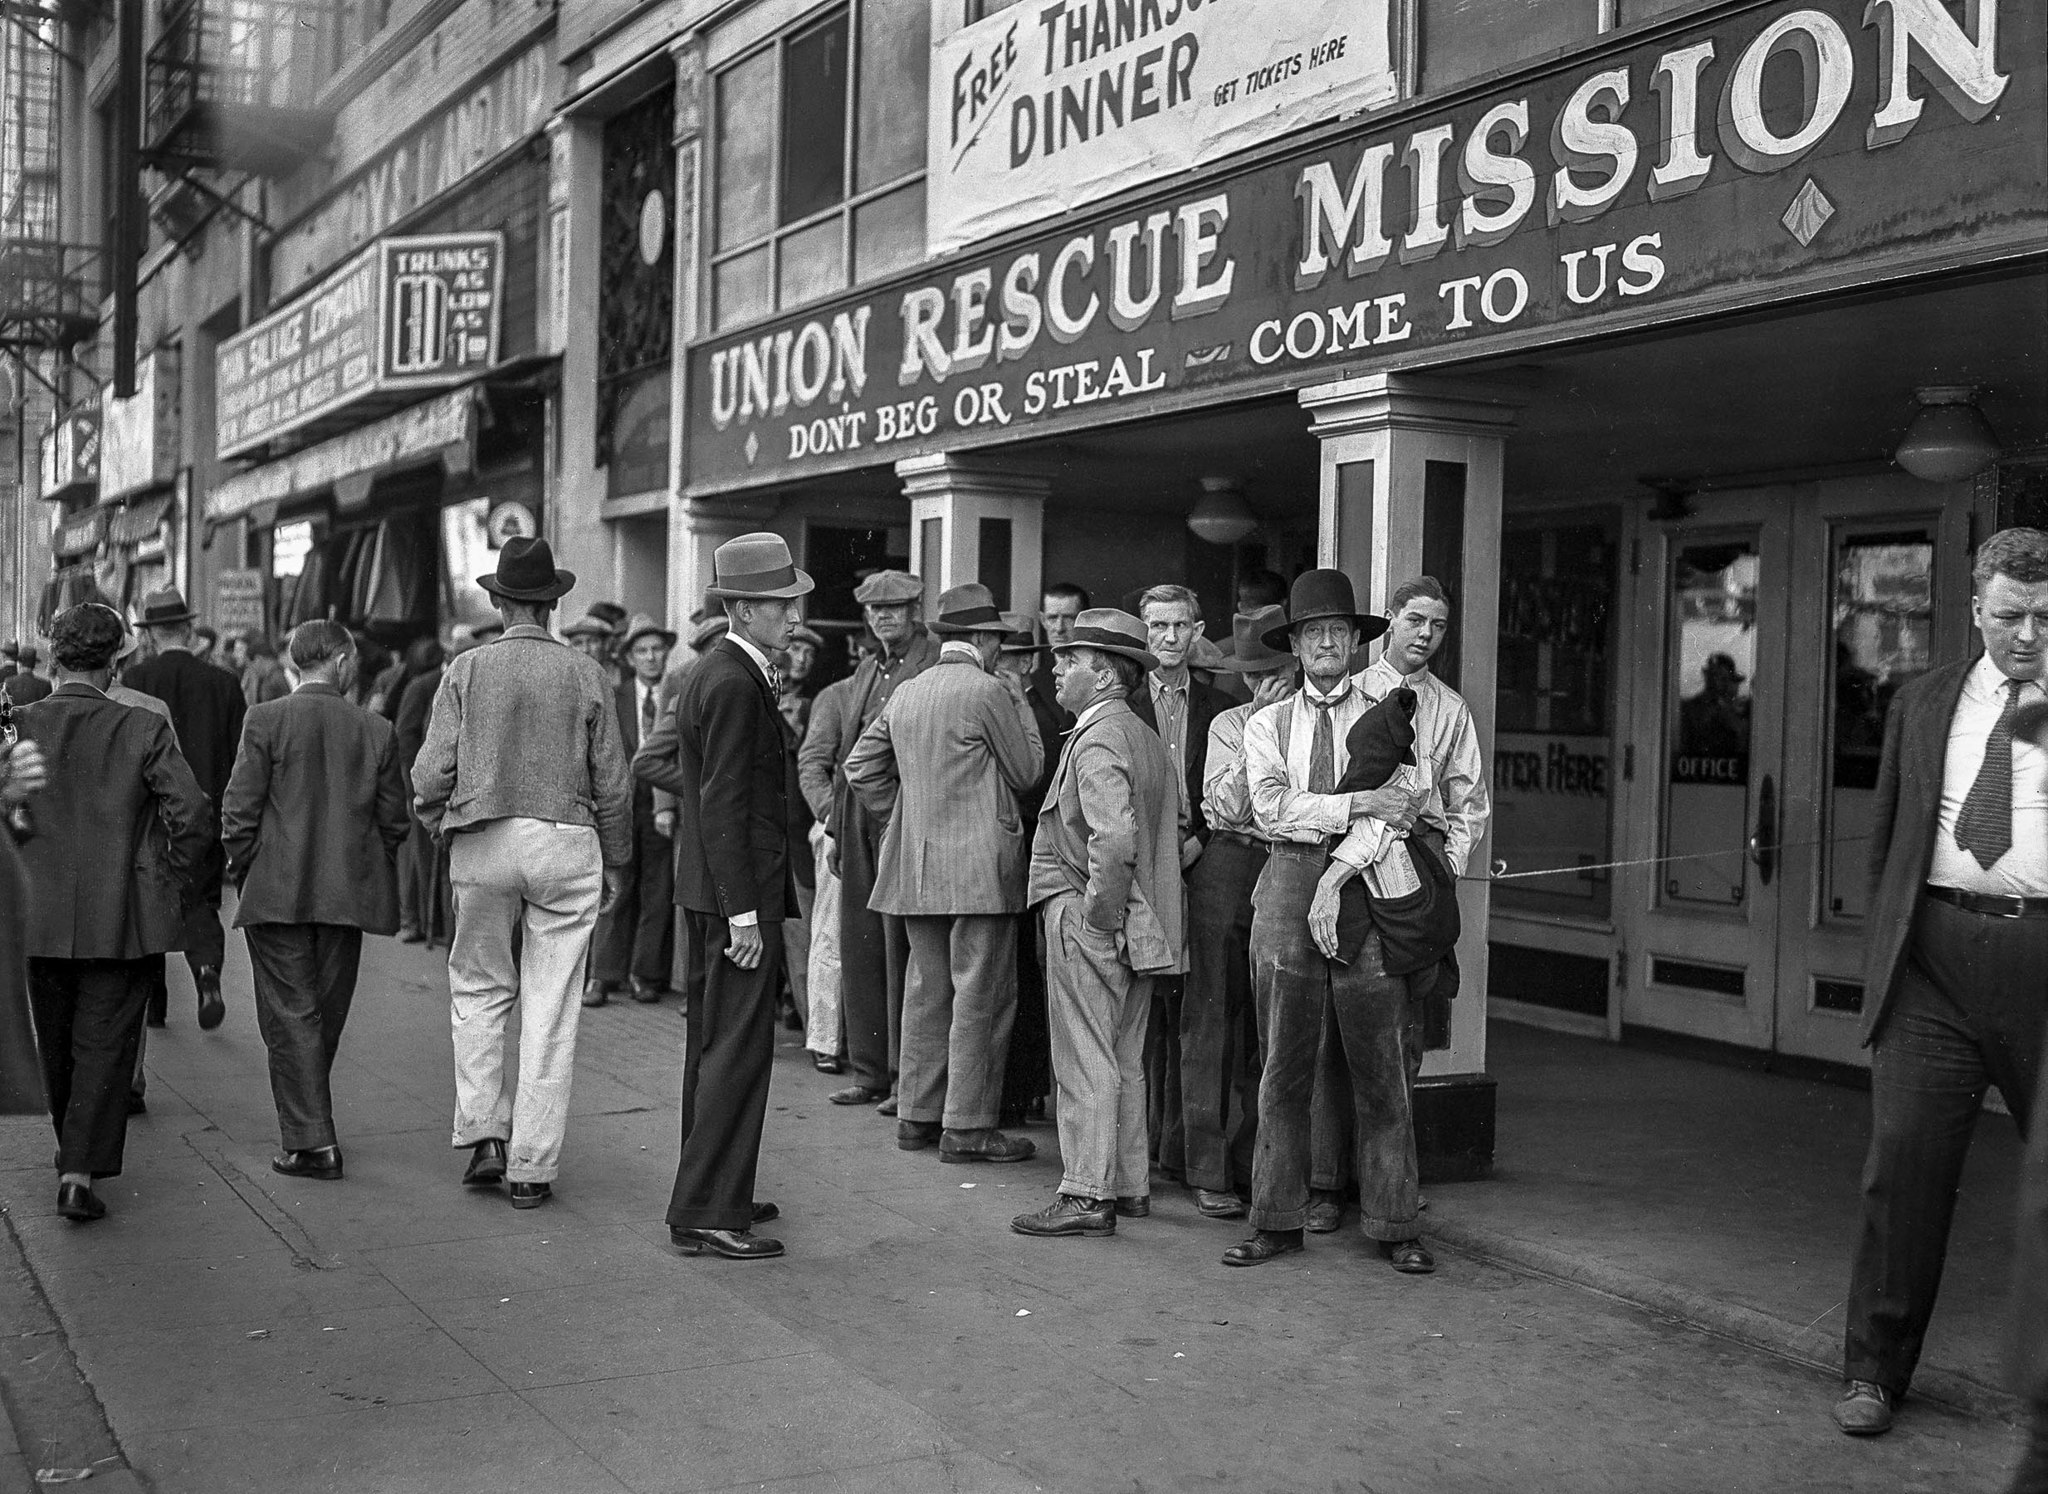 Nov. 26, 1936: Men lined up outside Union Rescue Mission for Thanksgiving meal, Los Angeles, Calif.